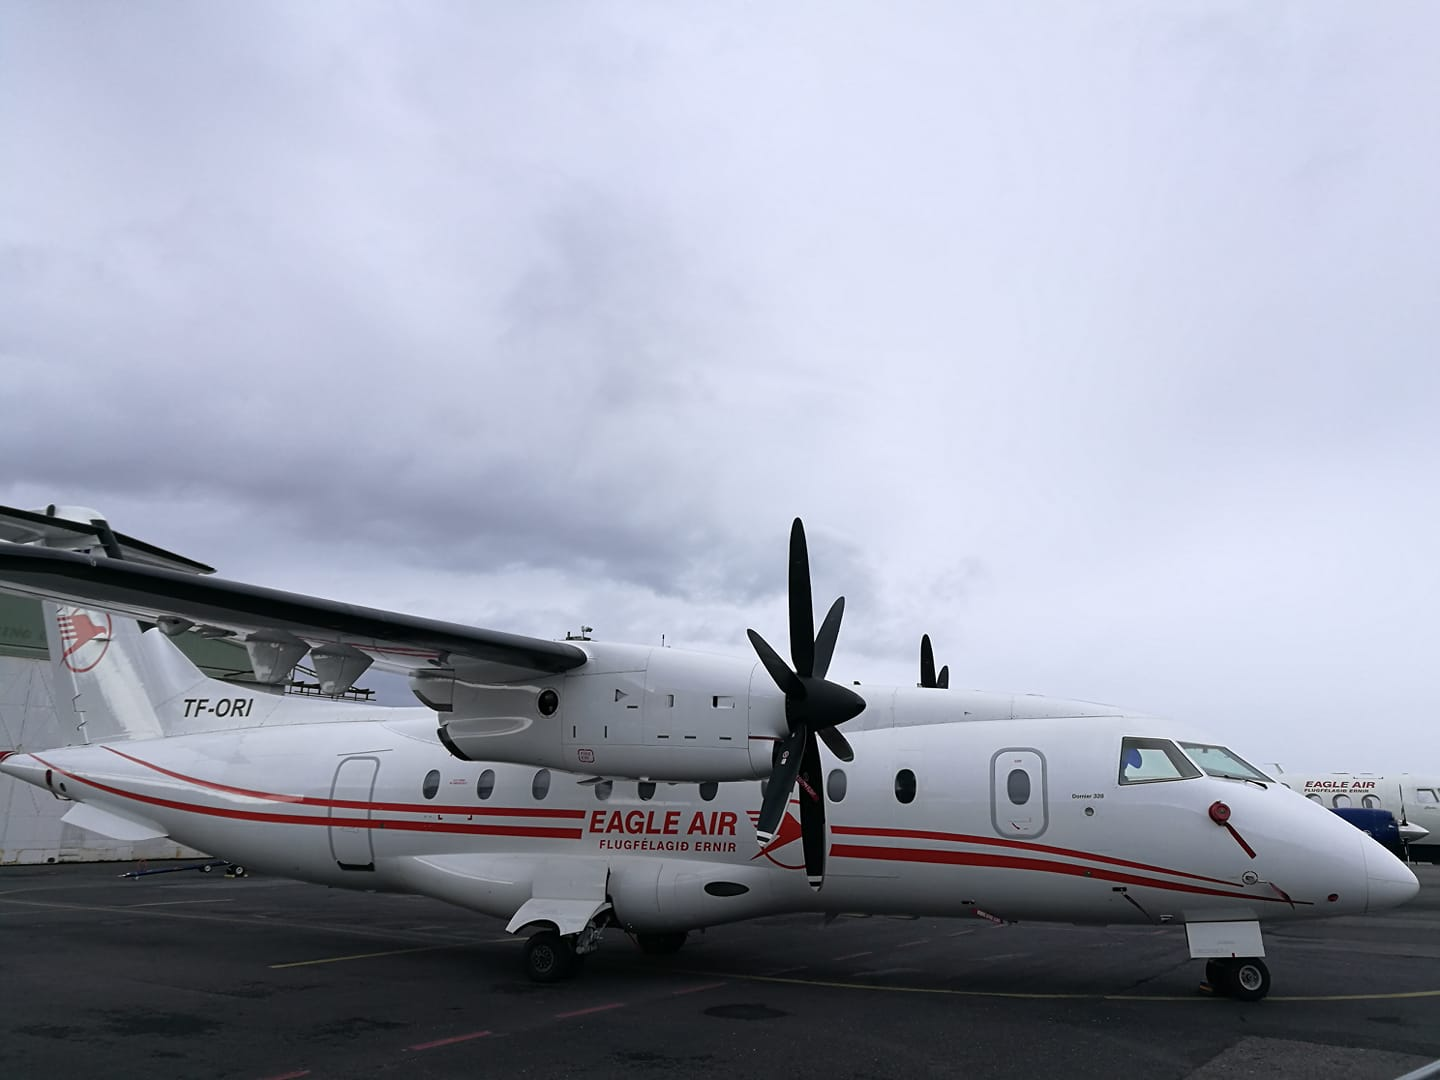 Eagle Air Dornier Do328 (reg. TF-ORI) // Source: Flugblogg